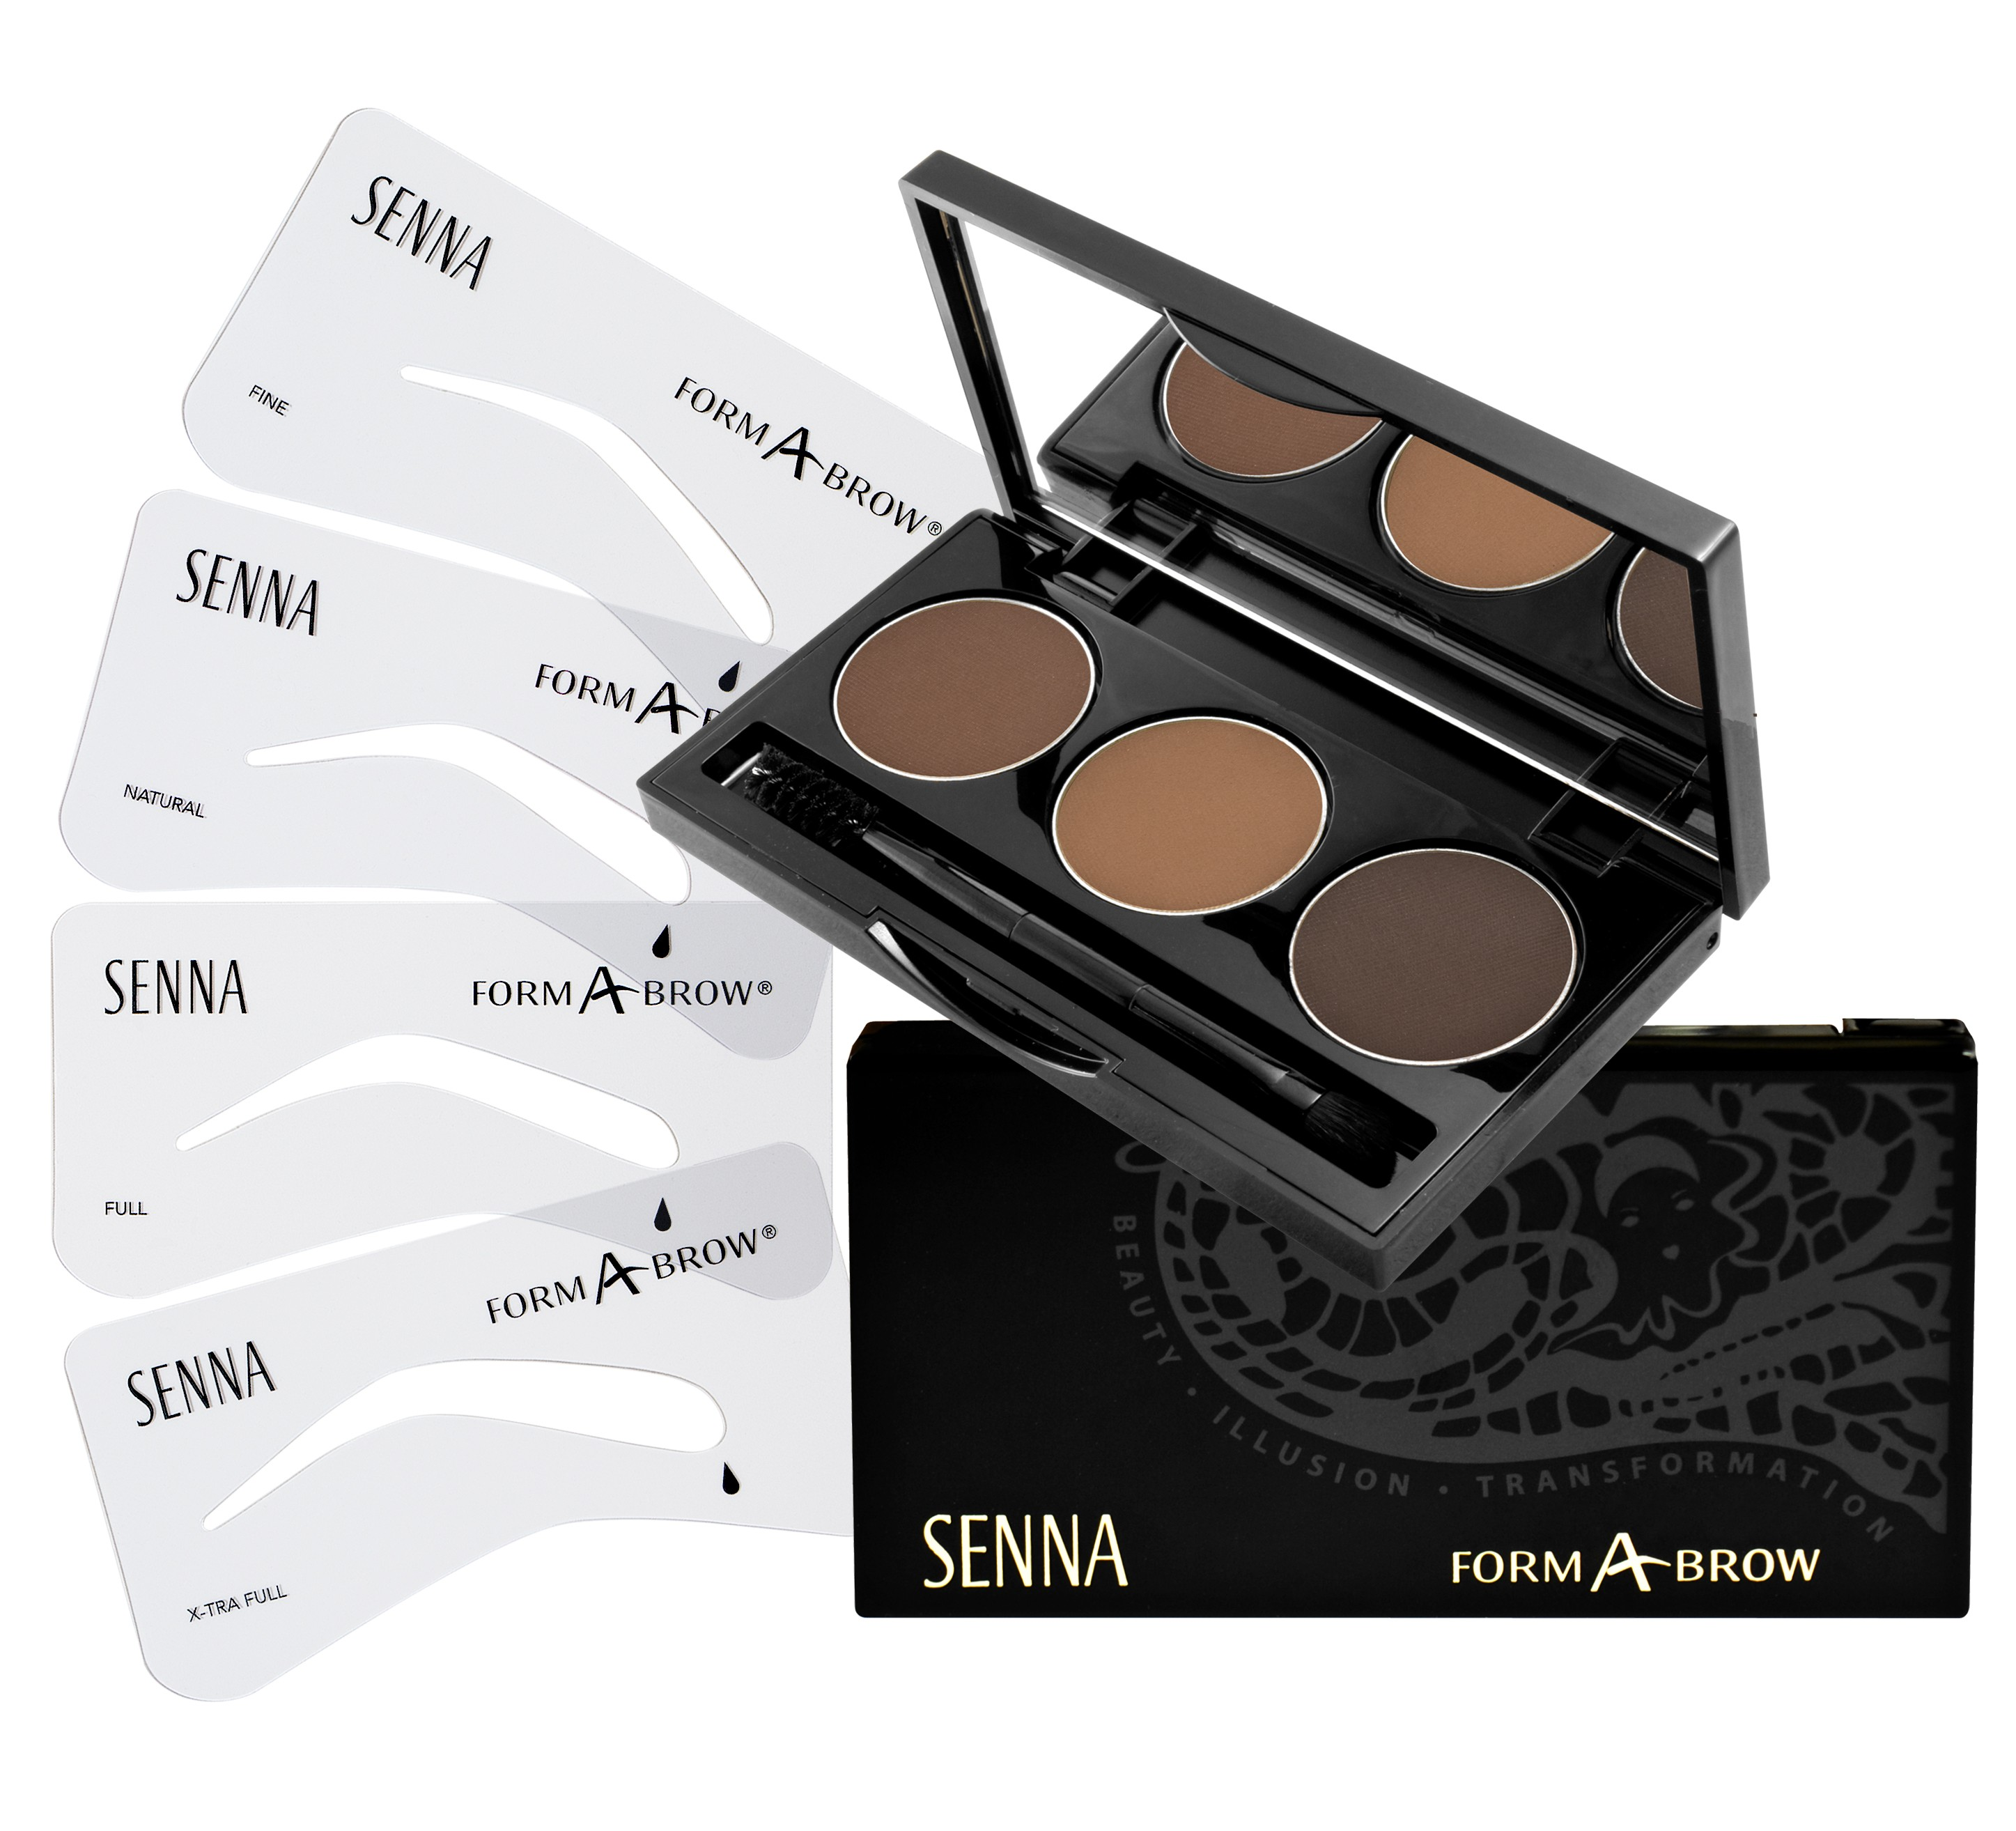 Senna Form A Brow Kit Neutral